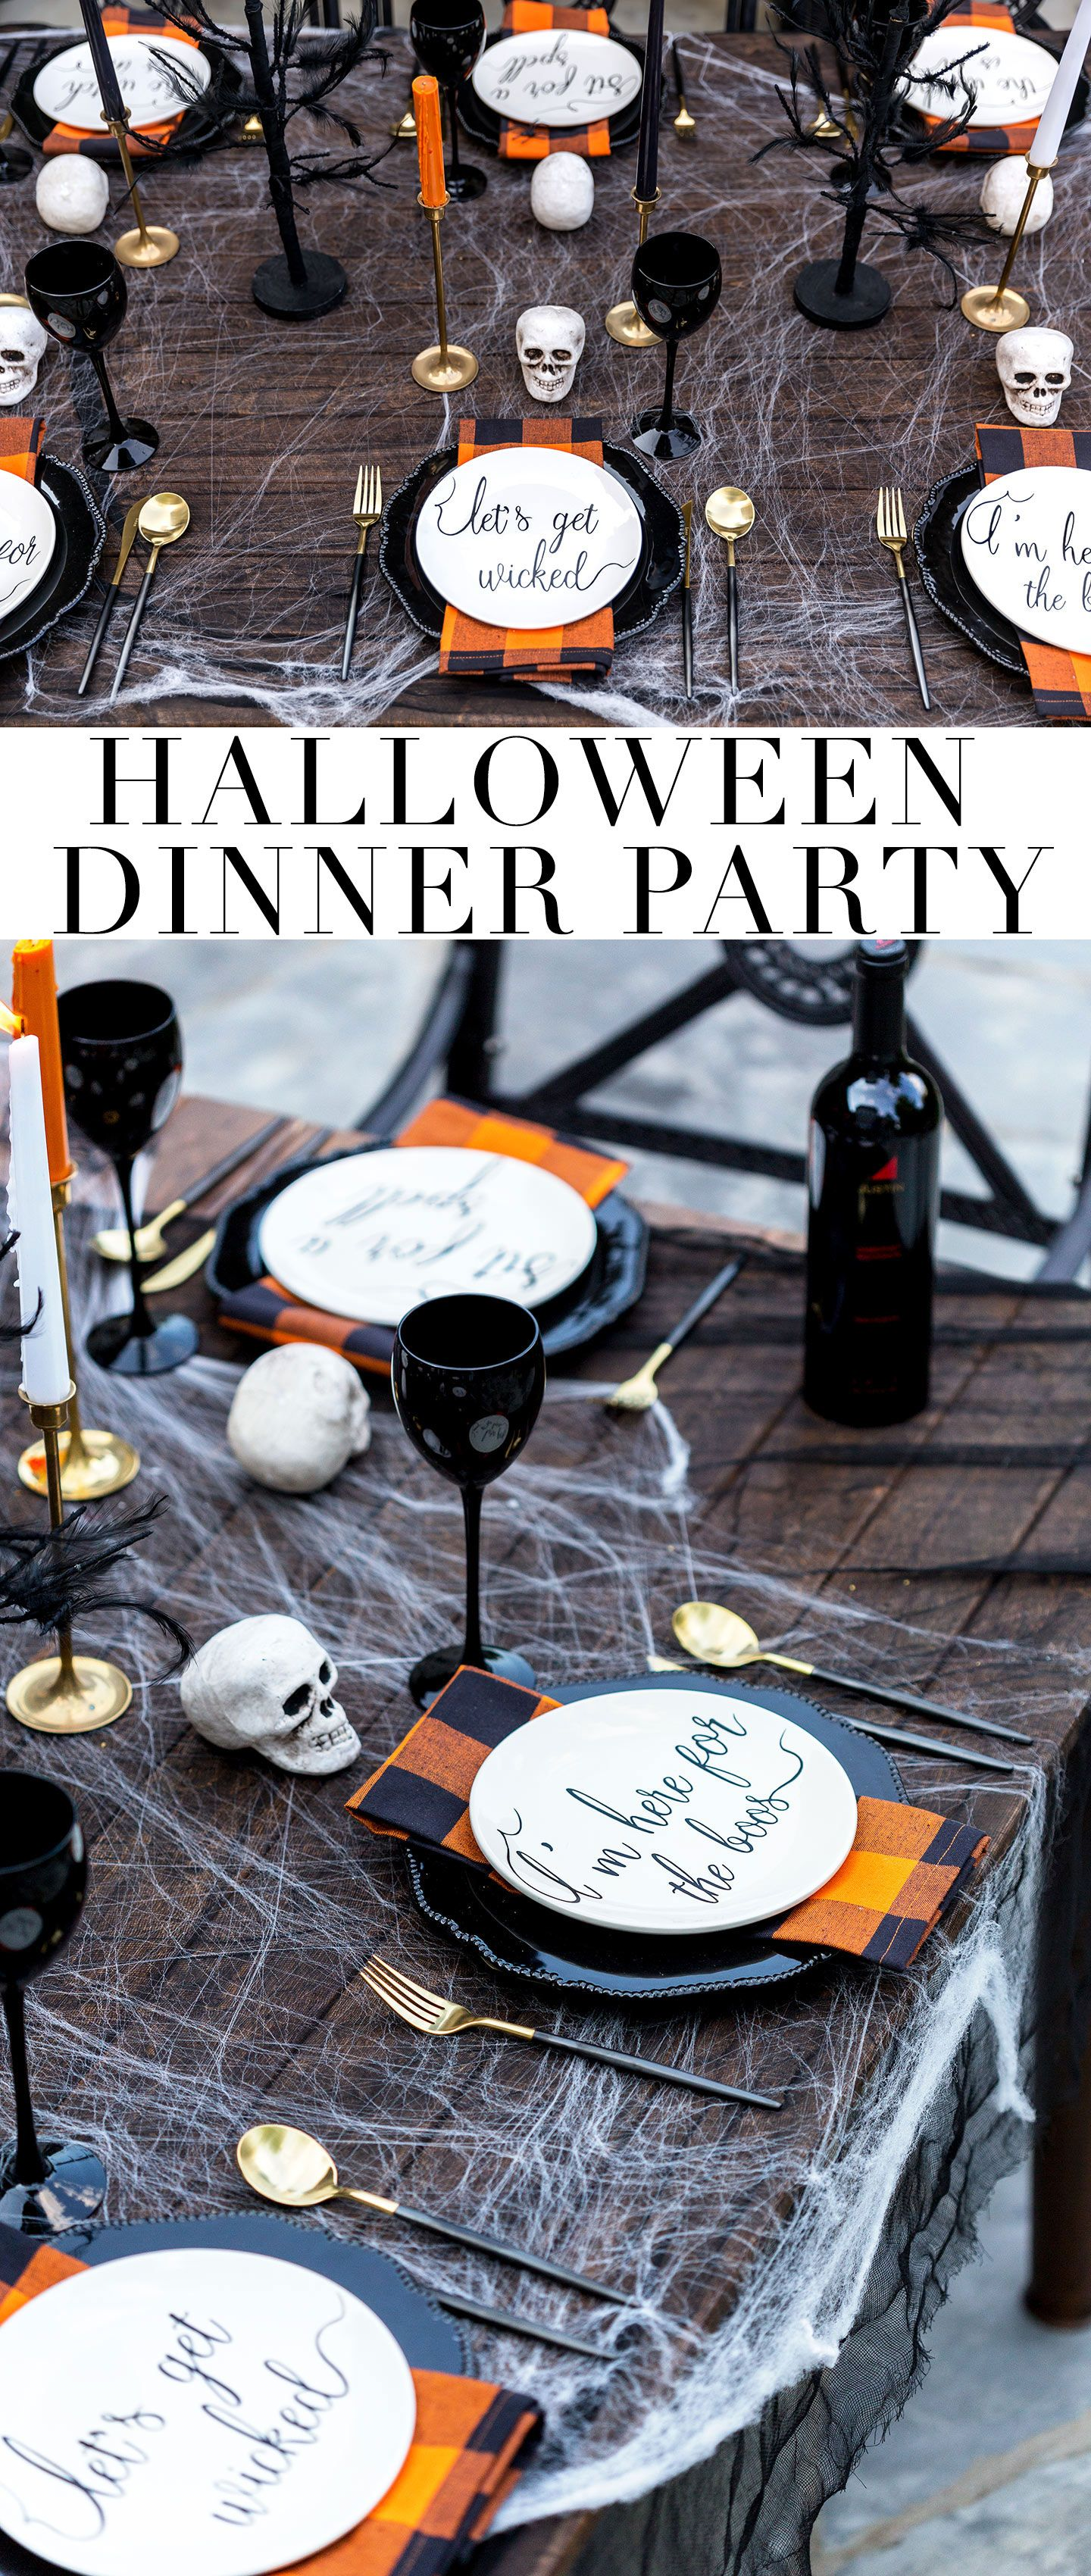 Halloween Dinner Party Ideas.Spooky Adult Halloween Party Table Arrangement Halloween